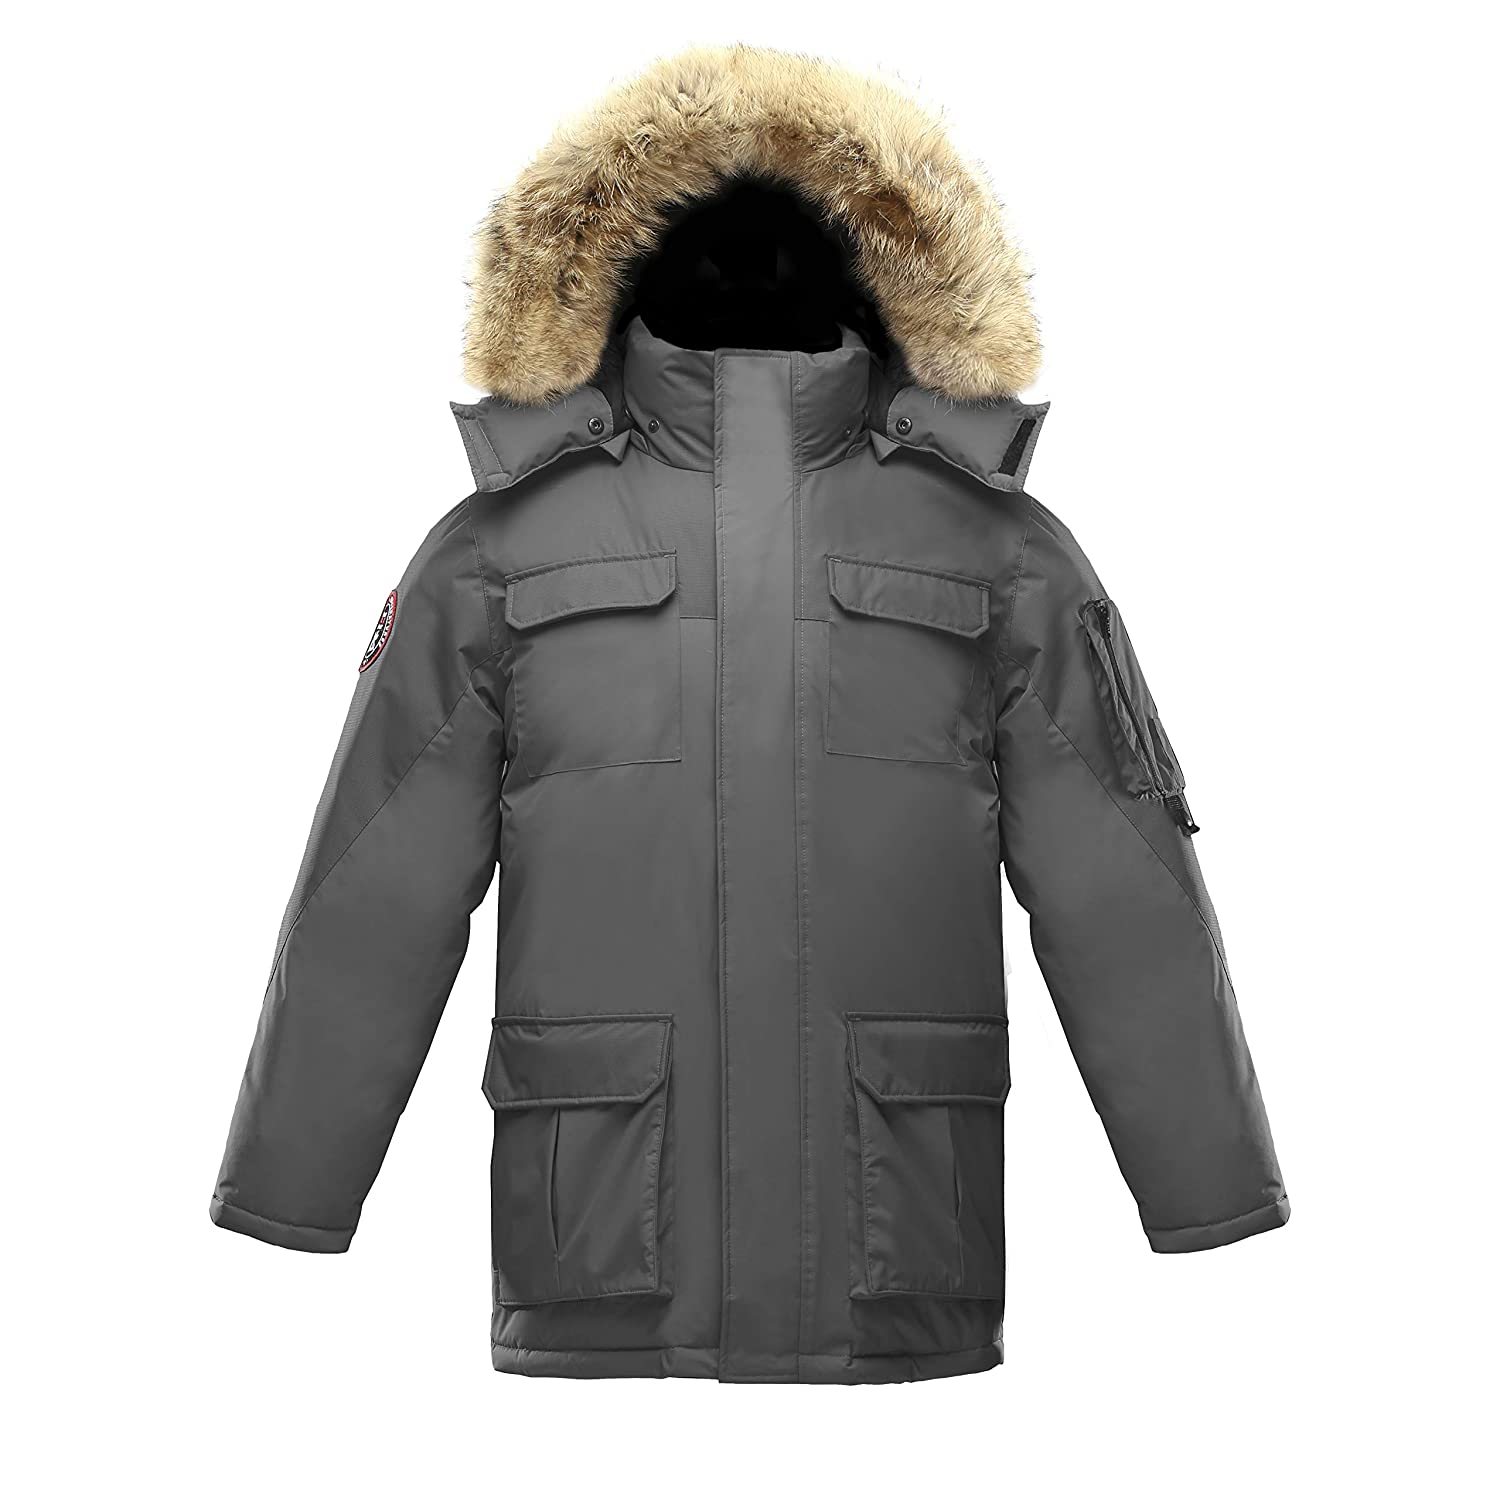 Triple F.A.T. Goose Chenega Mens Goose Down Jacket Parka with Real Coyote Fur at Amazon Men's Clothing store: